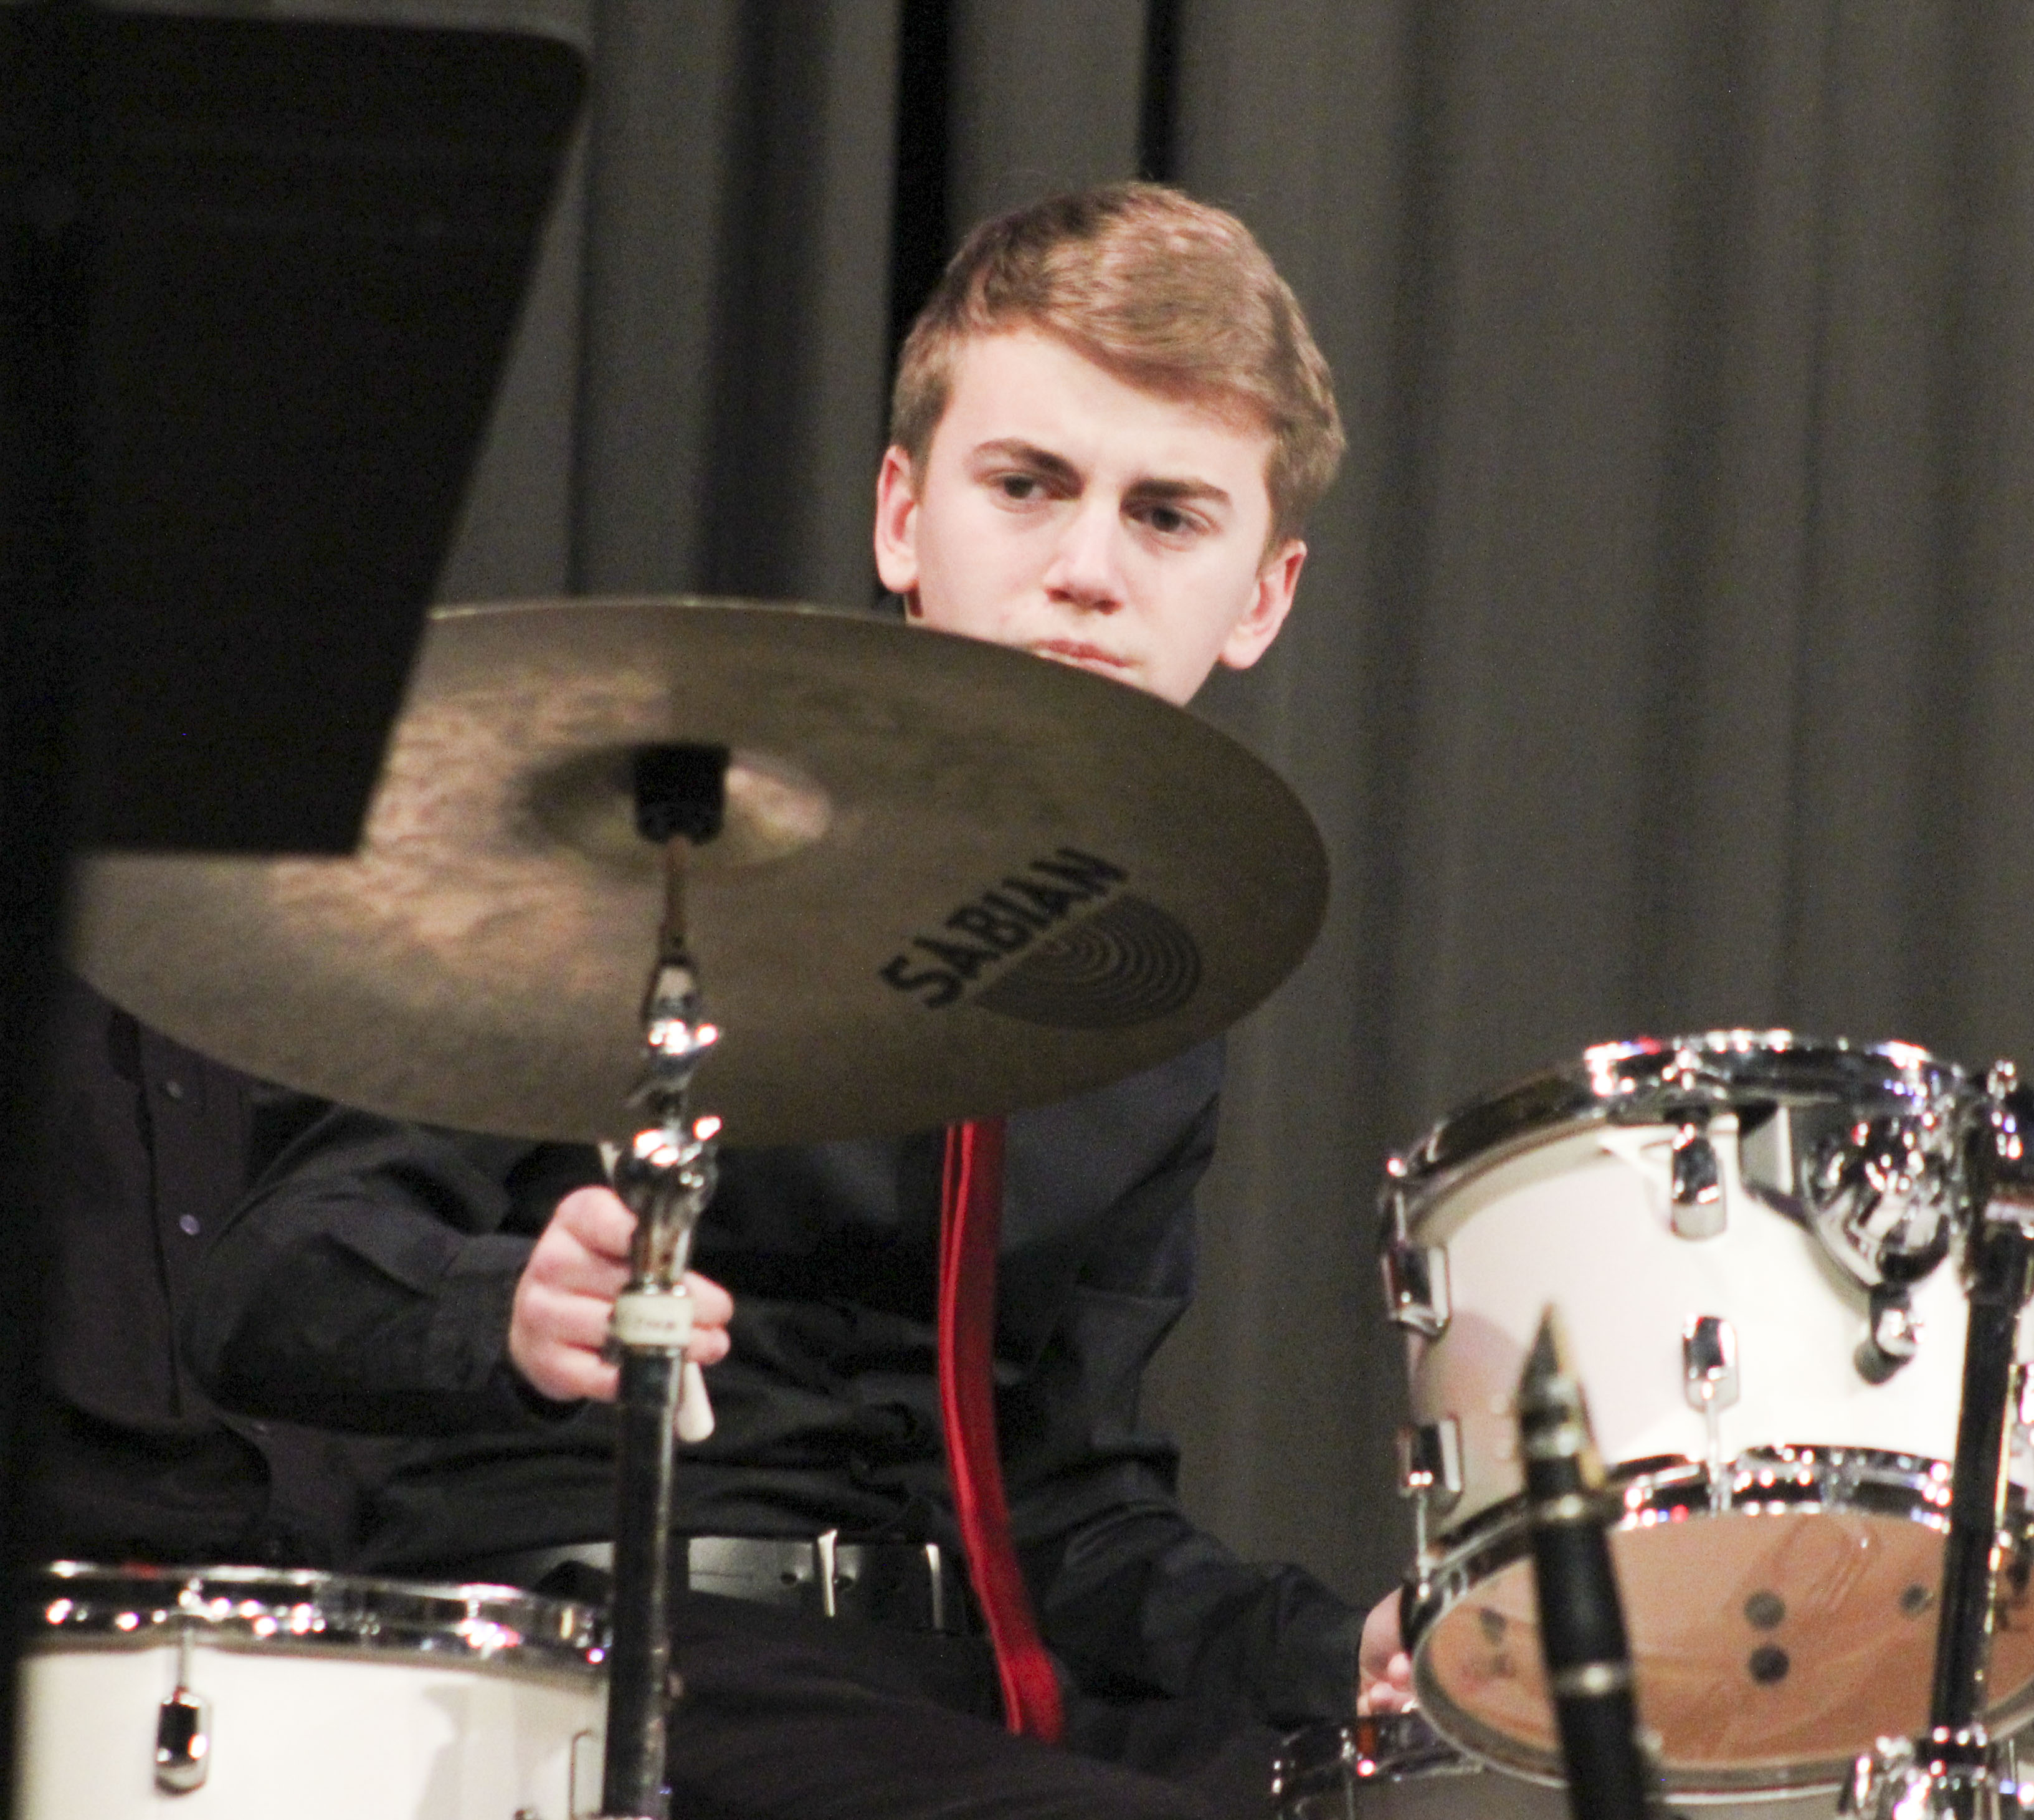 Grant Hospodarsky was one of the percussionists providing the beat for the high school jazz band.